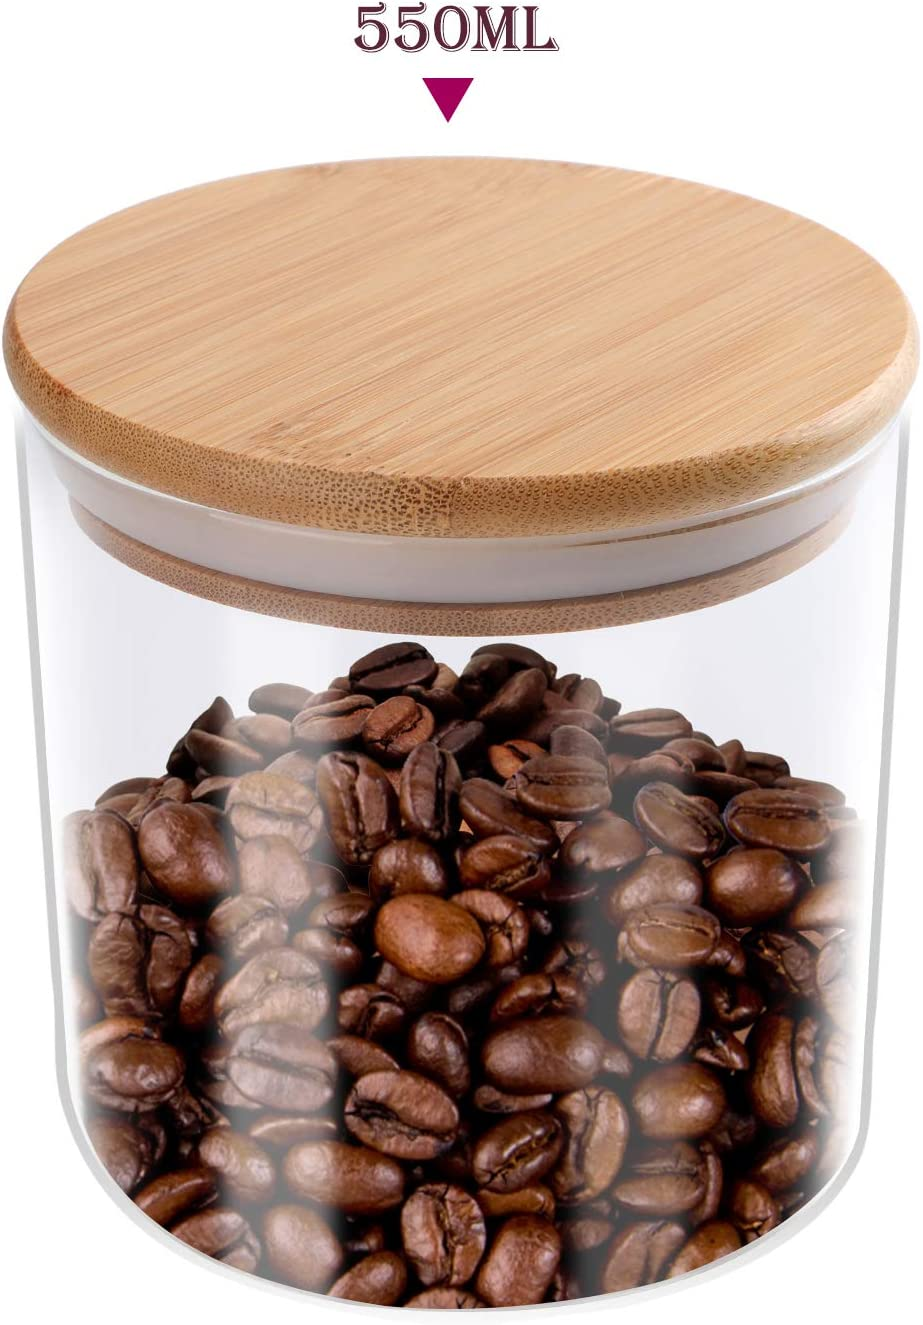 TRUSBER Food Storage Jar 18.6 Fl (550Ml) Glass, Airtight Bamboo Wooden Lid Clear Kitchen Container For Chocolate, Coffee, Flour, Candy, Sugar, Cookie, Spice And More